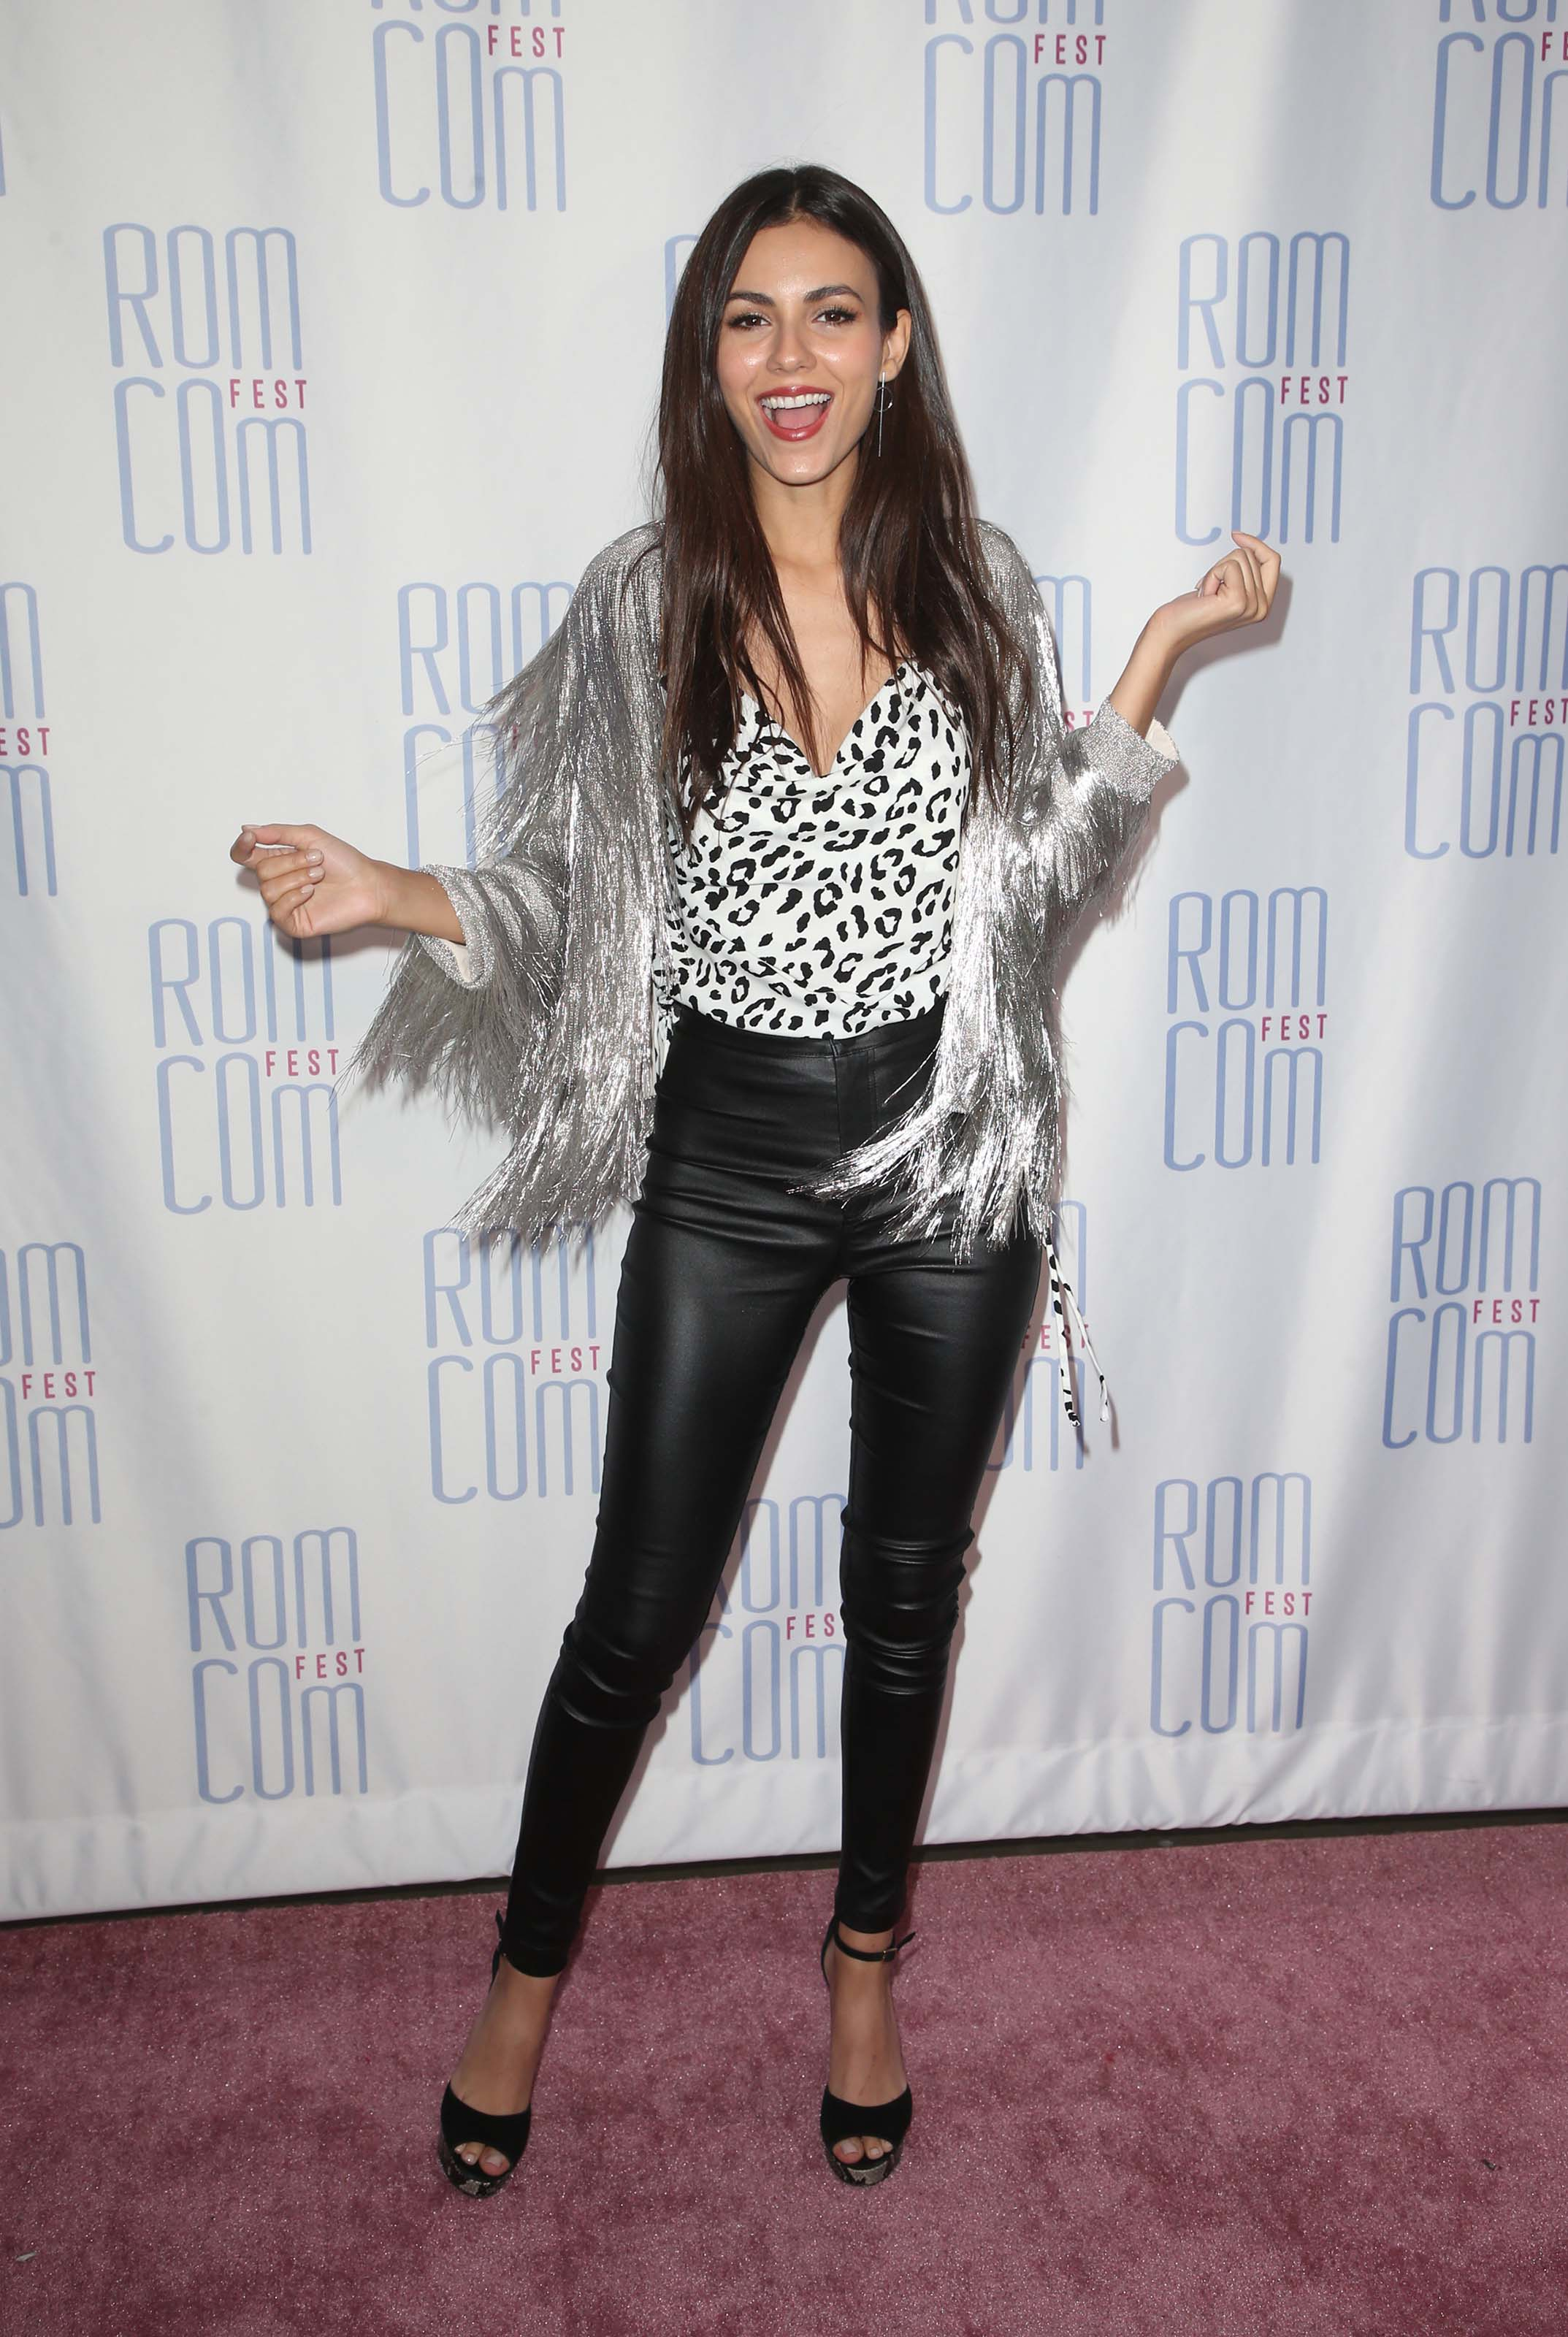 Victoria Justice attends 2019 Rom Con Fest Los Angeles screening of Summer Night